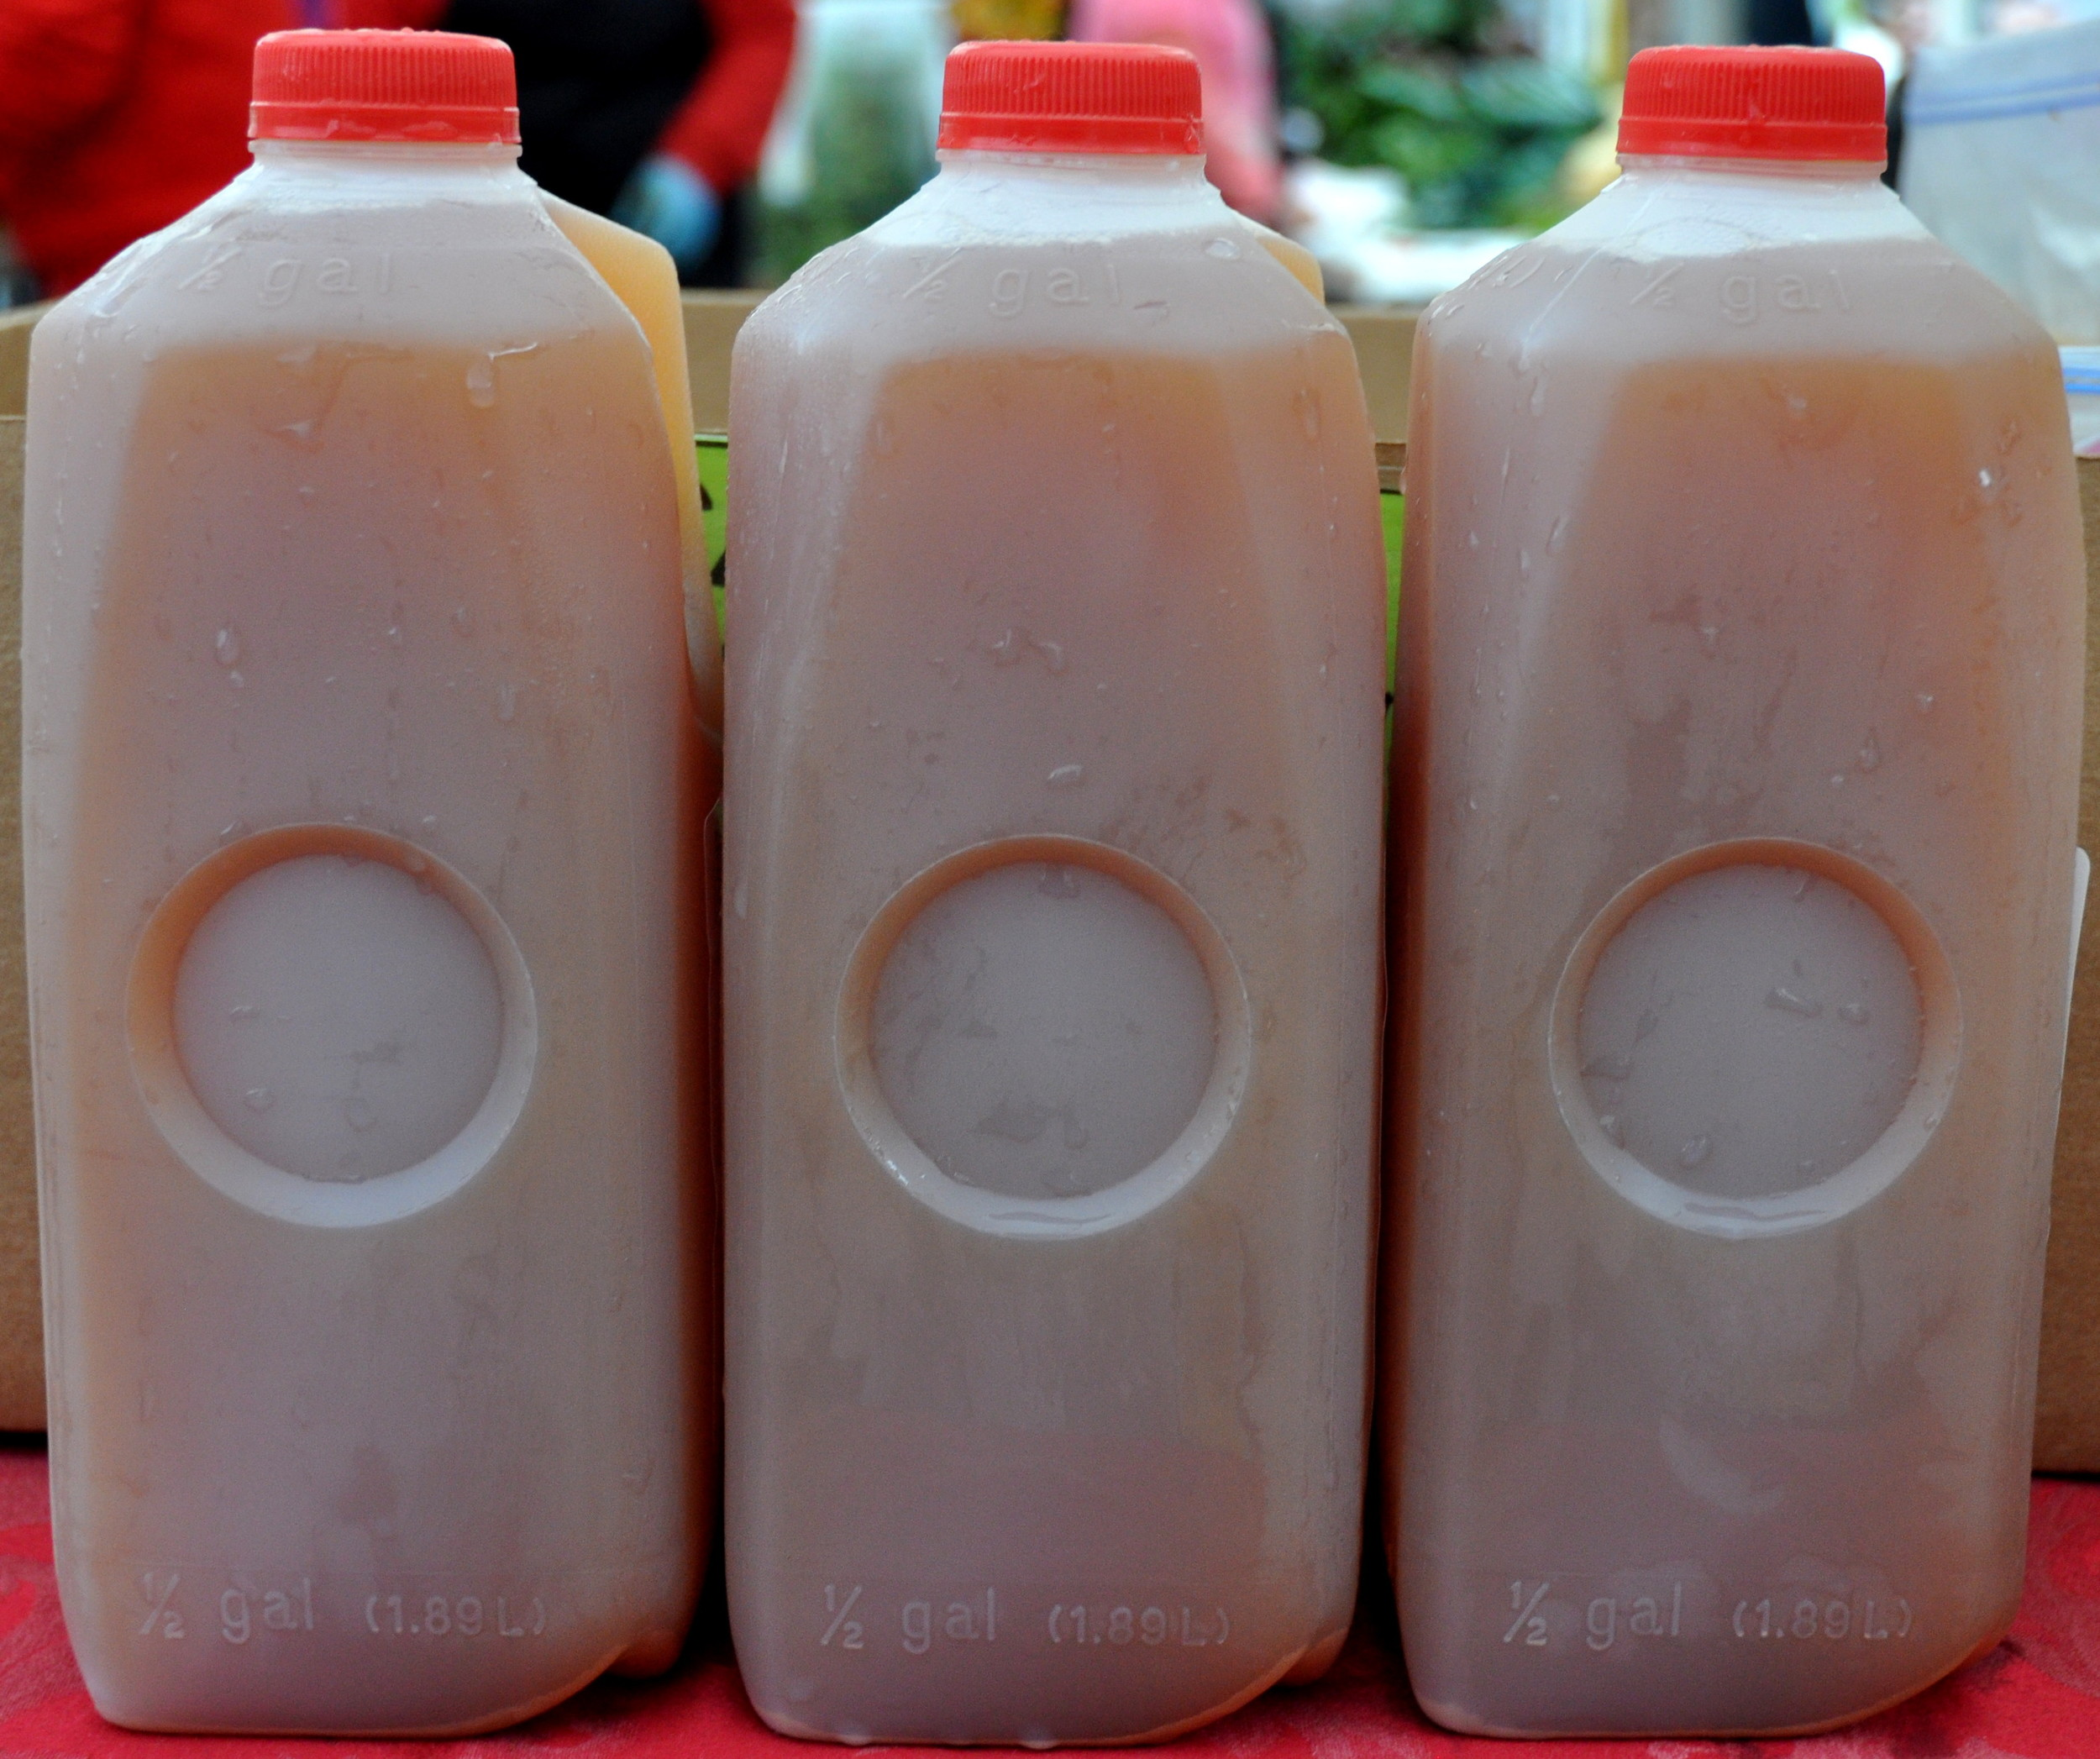 Fresh apple cider from Jerzy Boyz.  Photo copyright 2013 by Zachary D. Lyons.